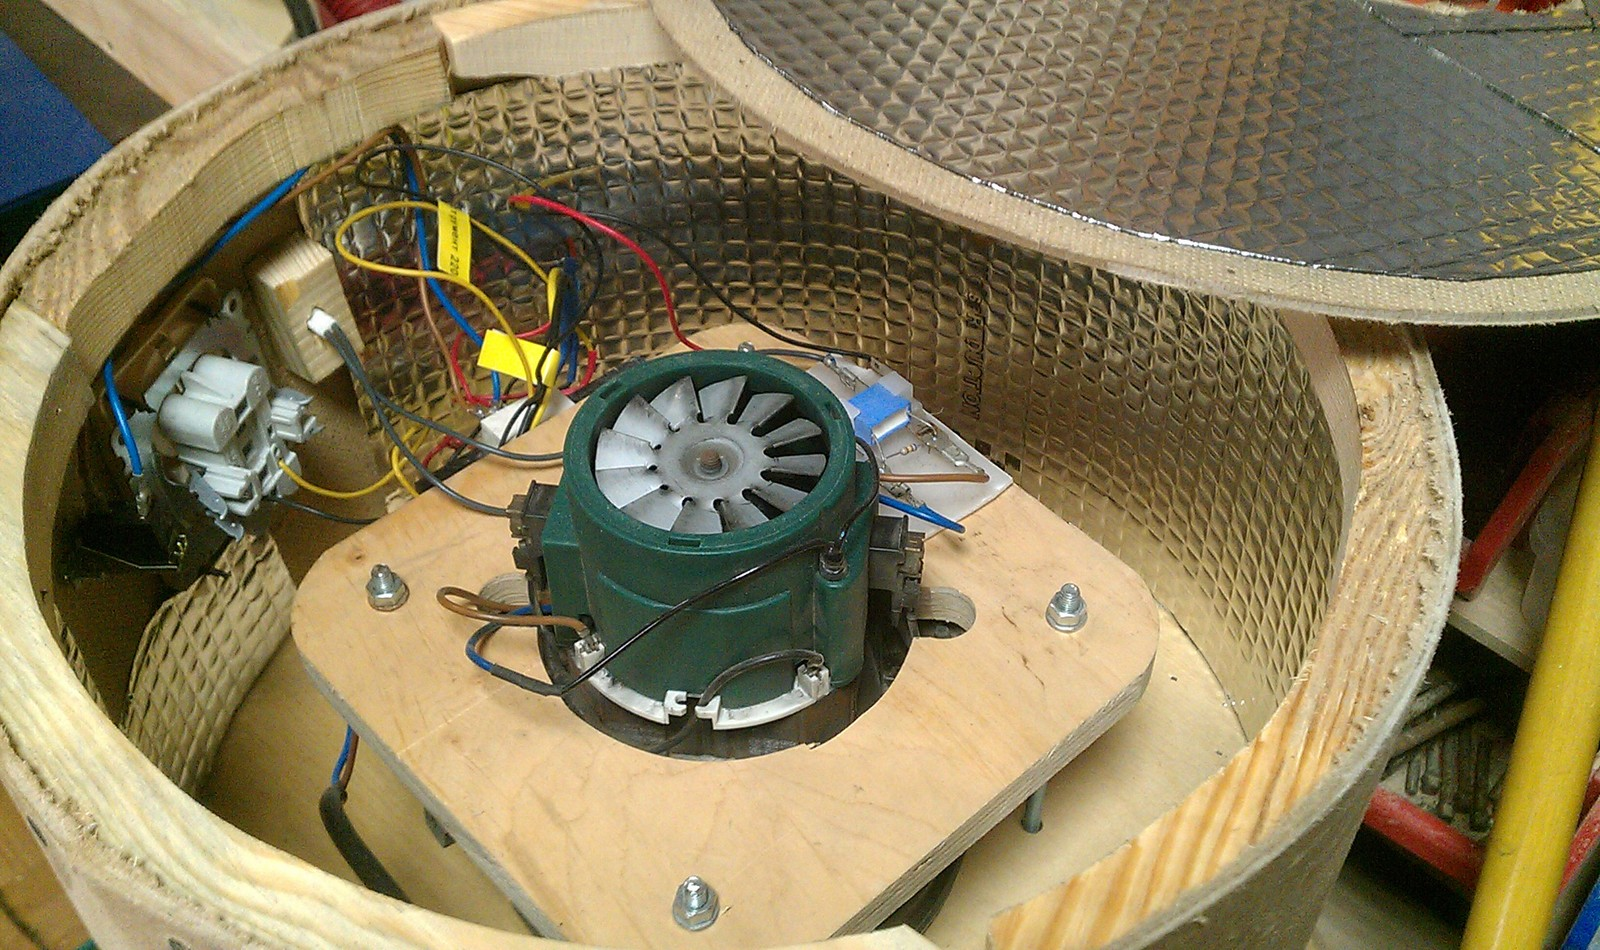 Homemade vacuum cleaner for the carpentry workshop to, vacuum cleaner, done, made, do, vacuum cleaner, only, hose, floor, mounted, filter, community, repeat, option, my, liters, barrel, decided, therefore, just